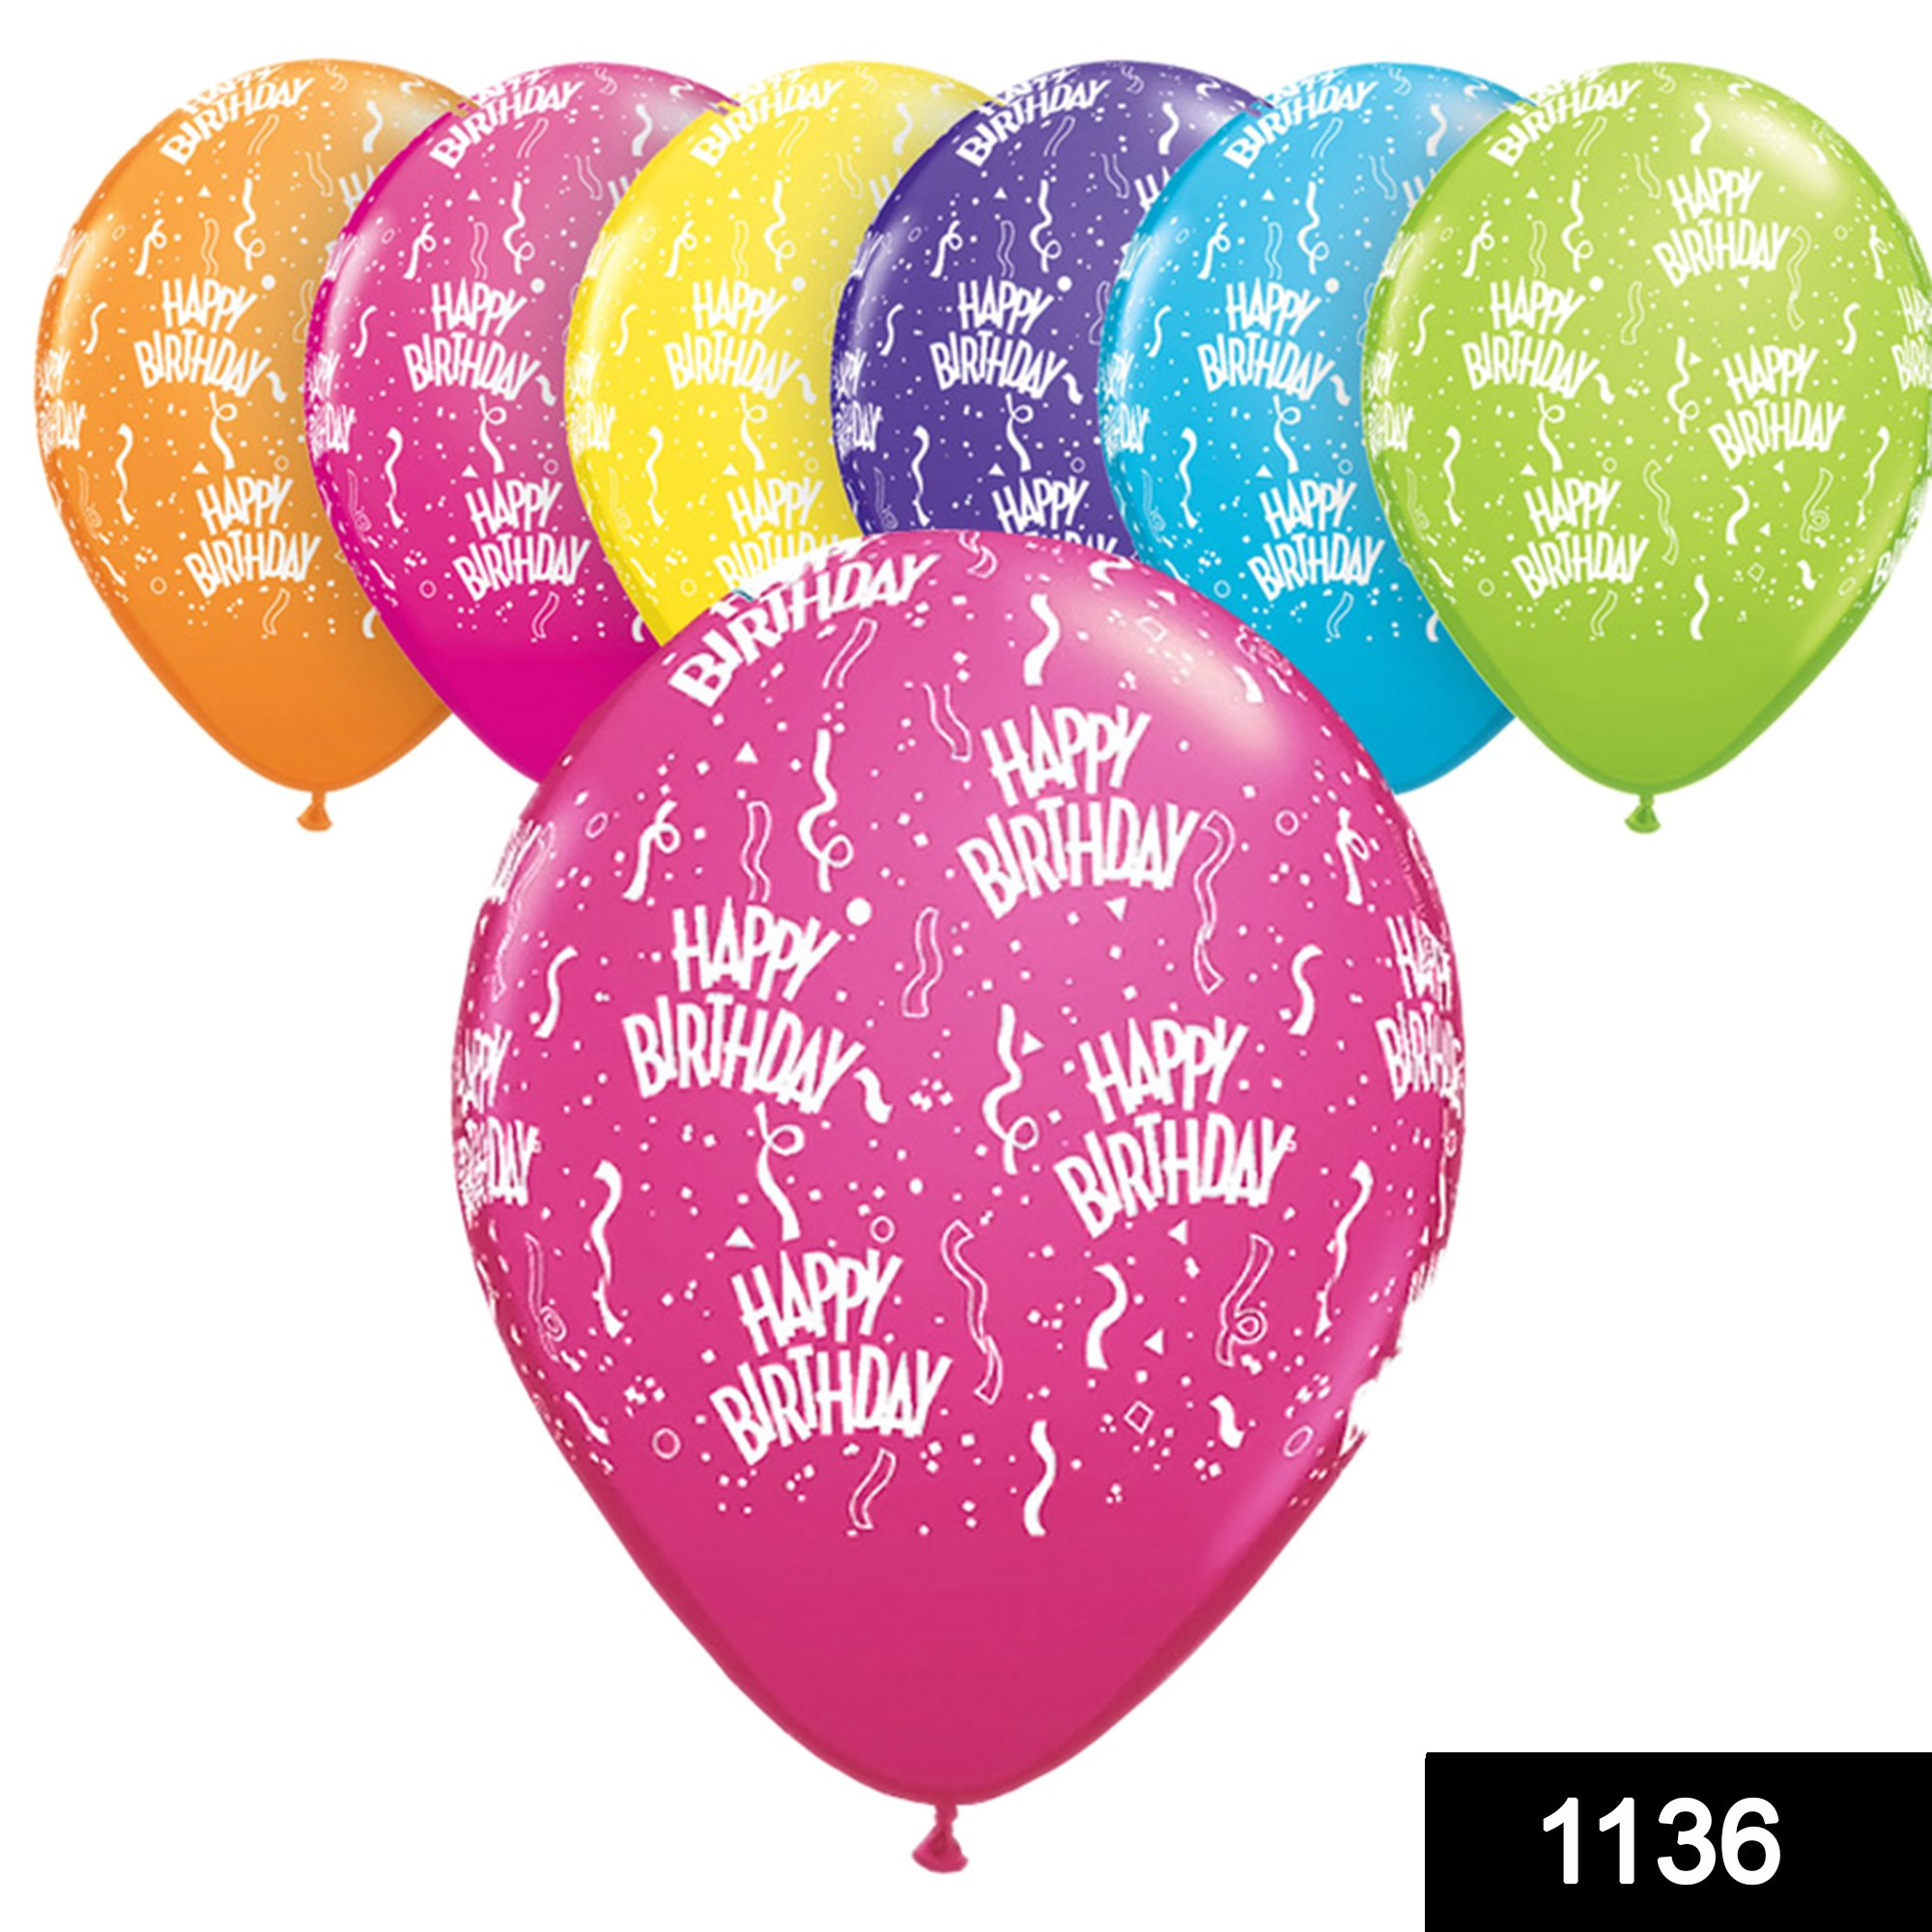 1136 Balloon Pack for Birthday Party Decoration & Occasions (100 pcs) -